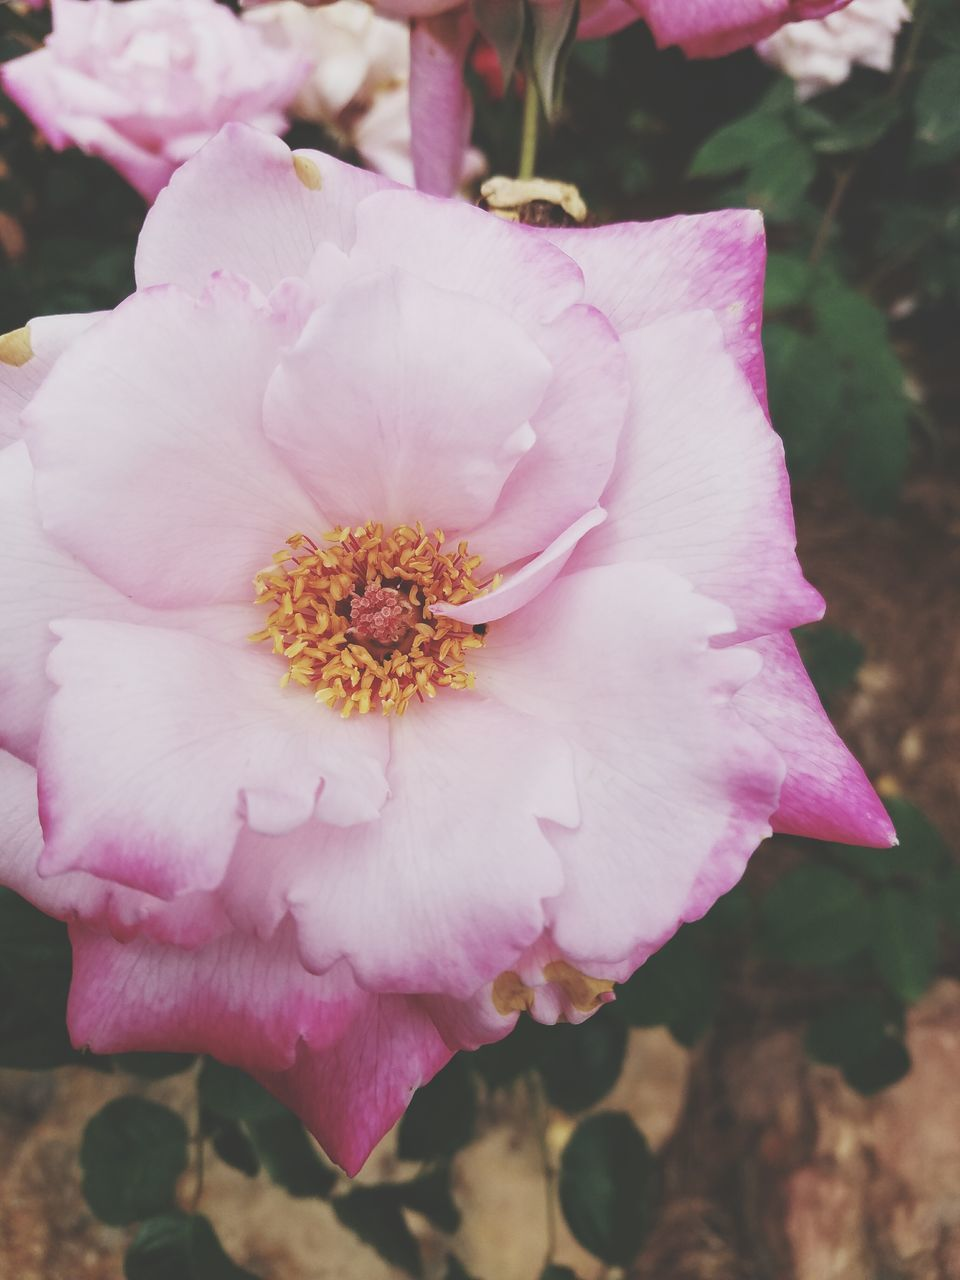 flower, petal, pink color, beauty in nature, flower head, fragility, nature, close-up, outdoors, wild rose, freshness, day, growth, plant, blooming, no people